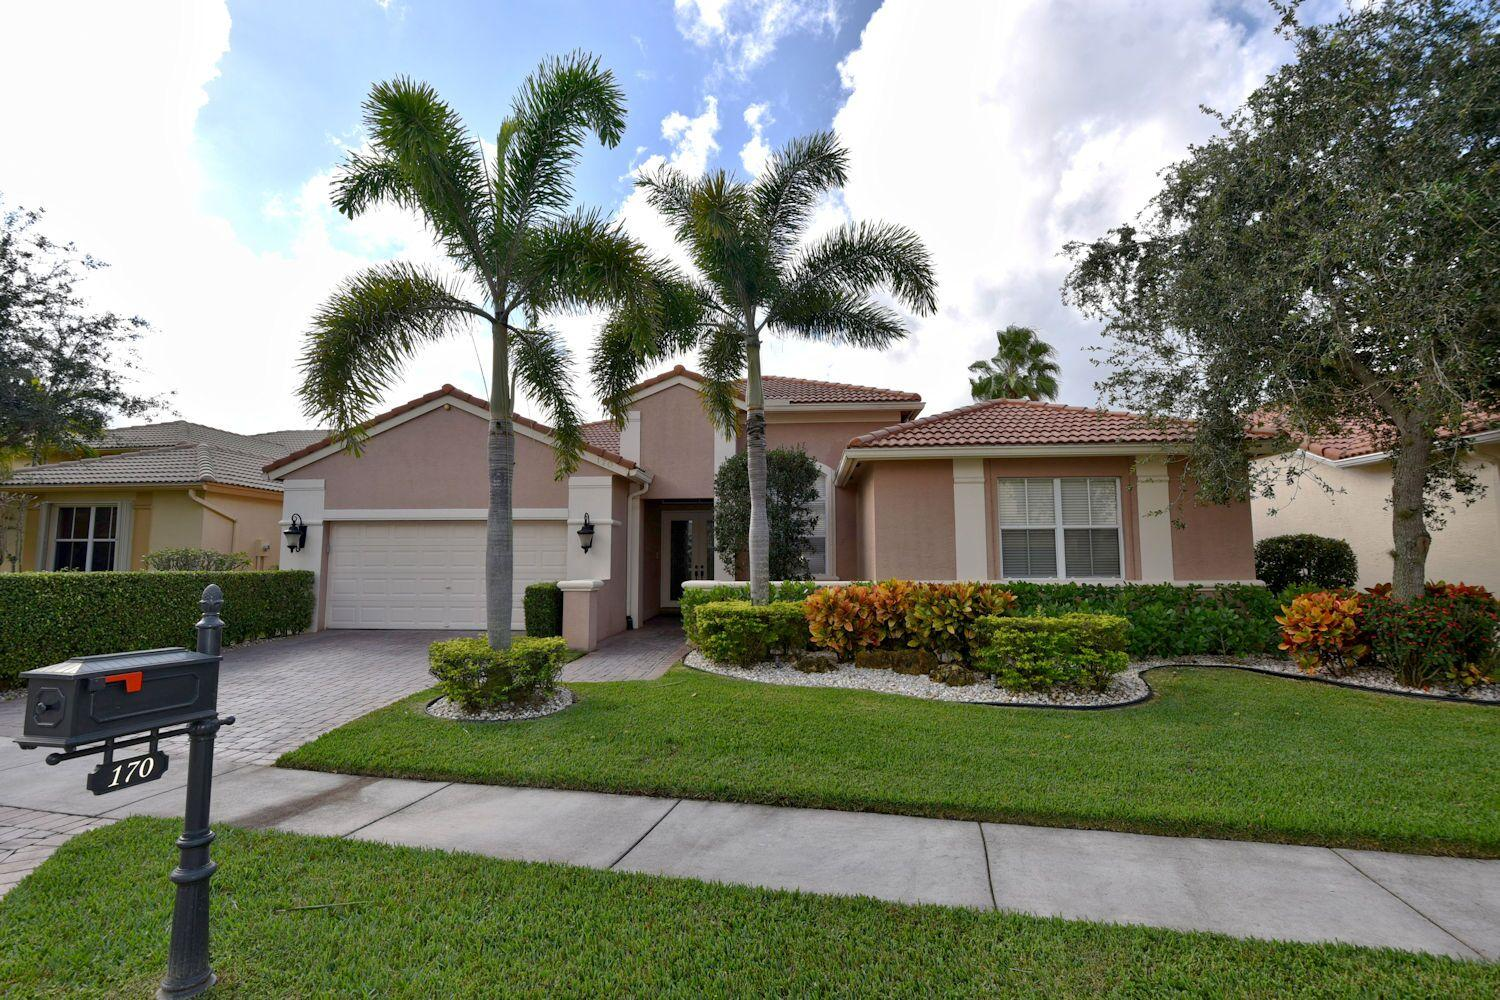 Home for sale in mirabella at mirasol a Palm Beach Gardens Florida